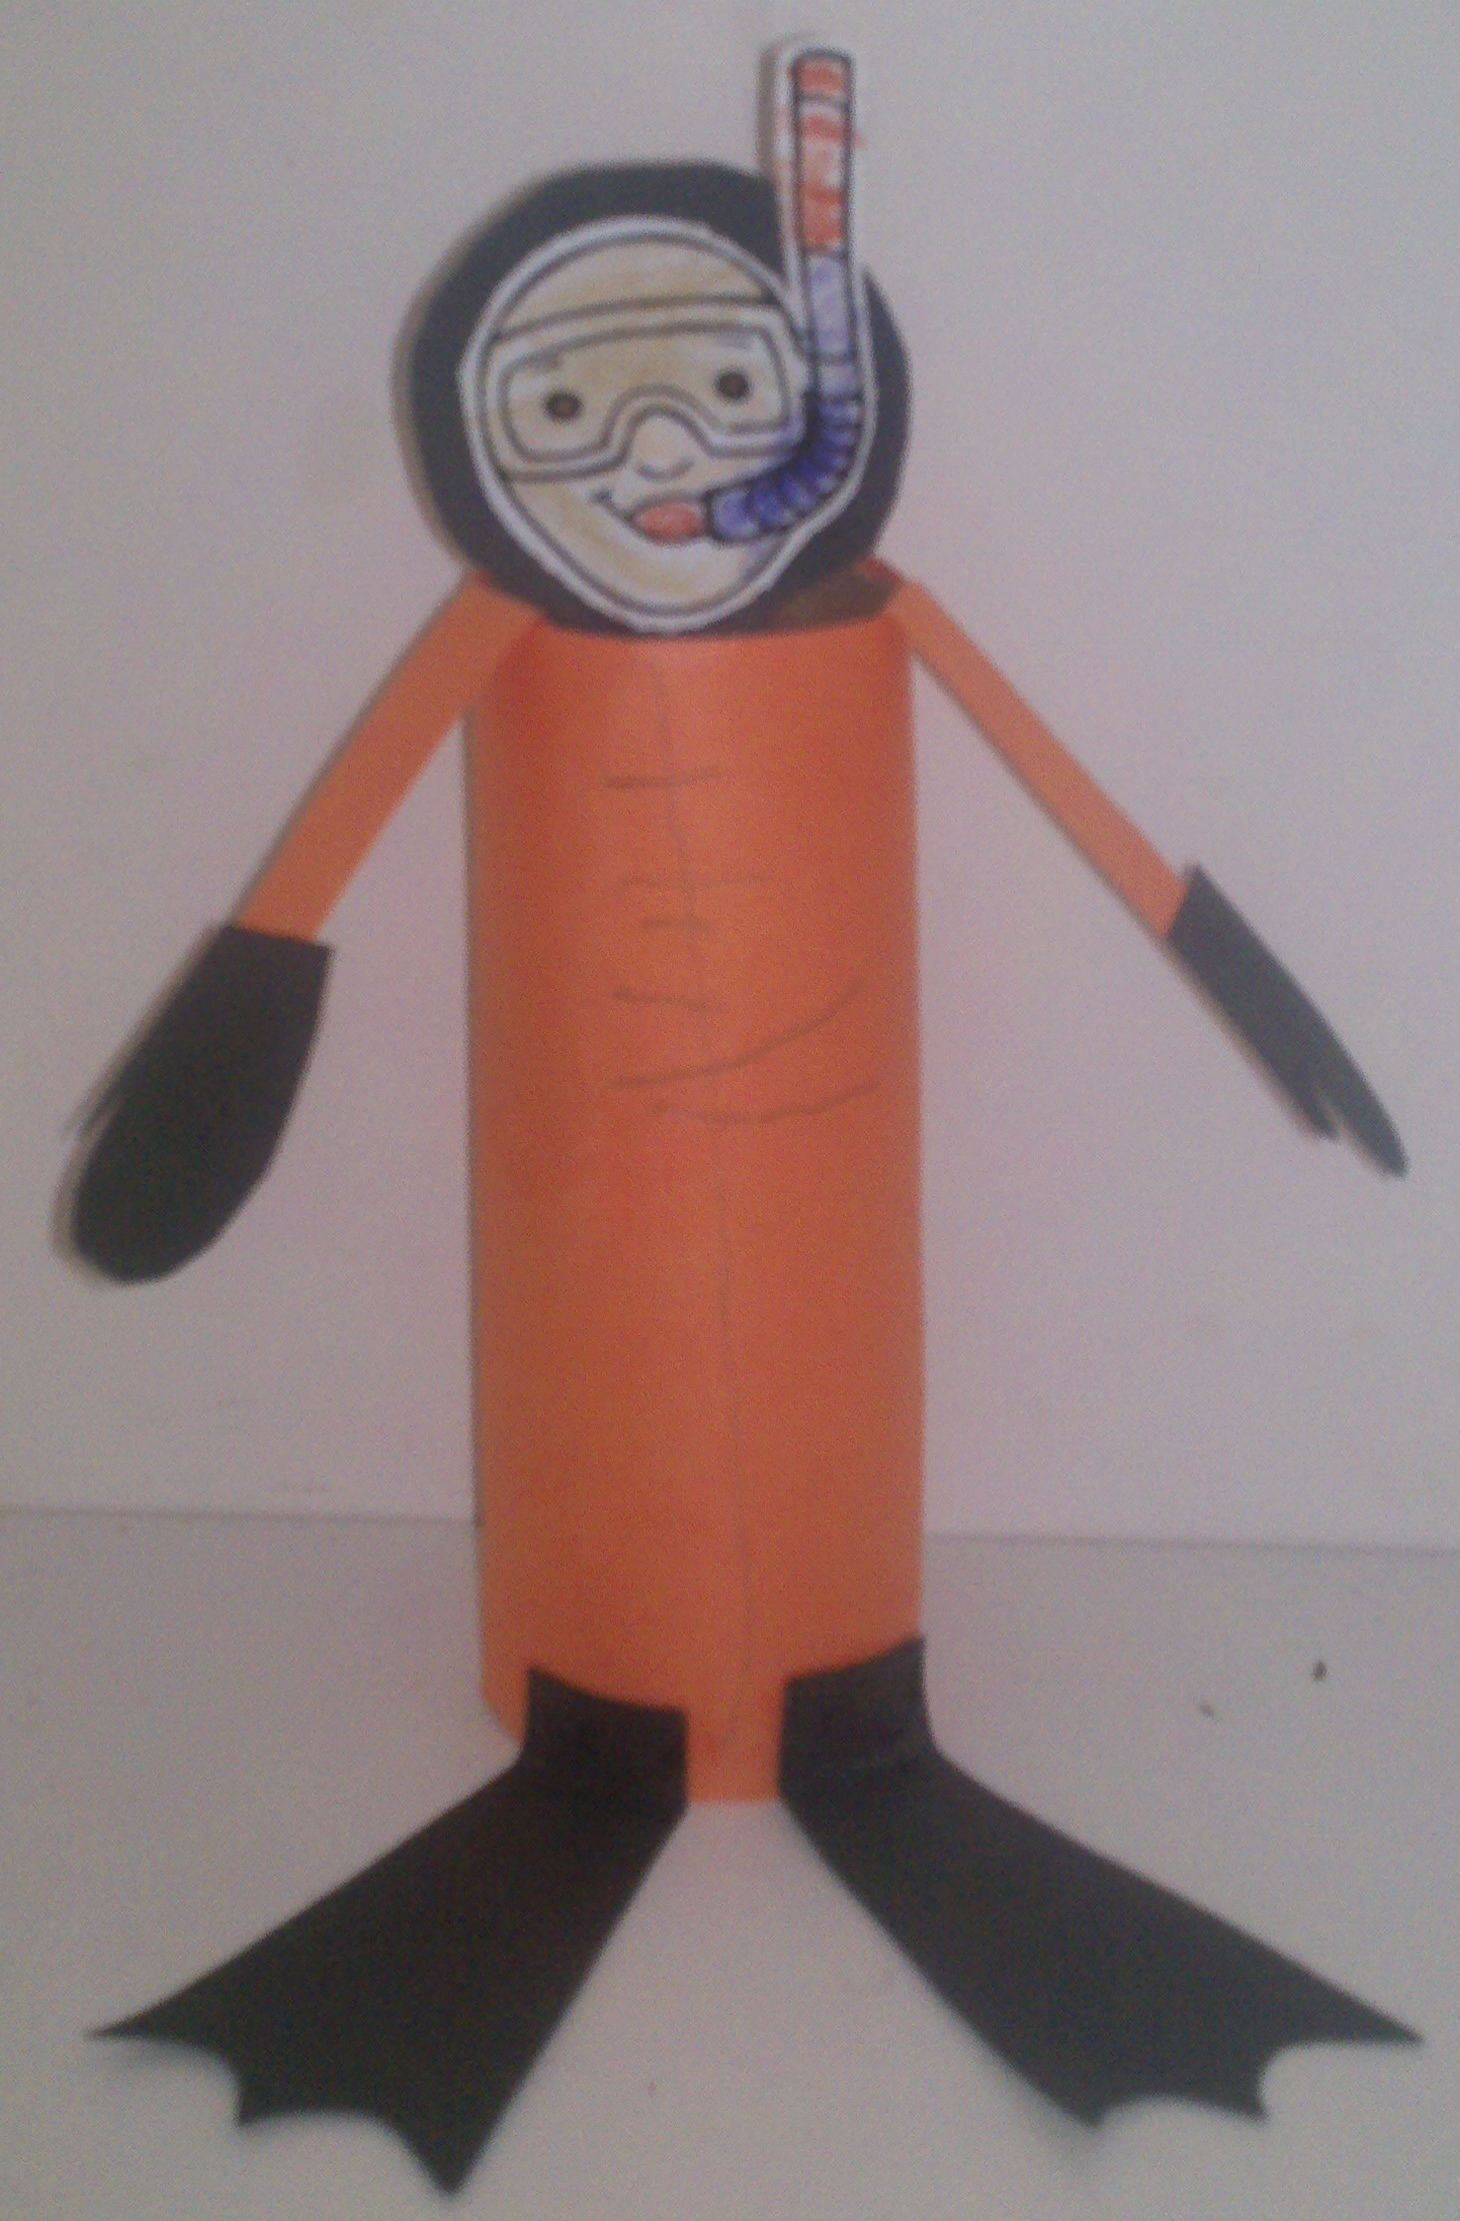 The Kids Made A Scuba Diver They Used Paper Tubes To Form